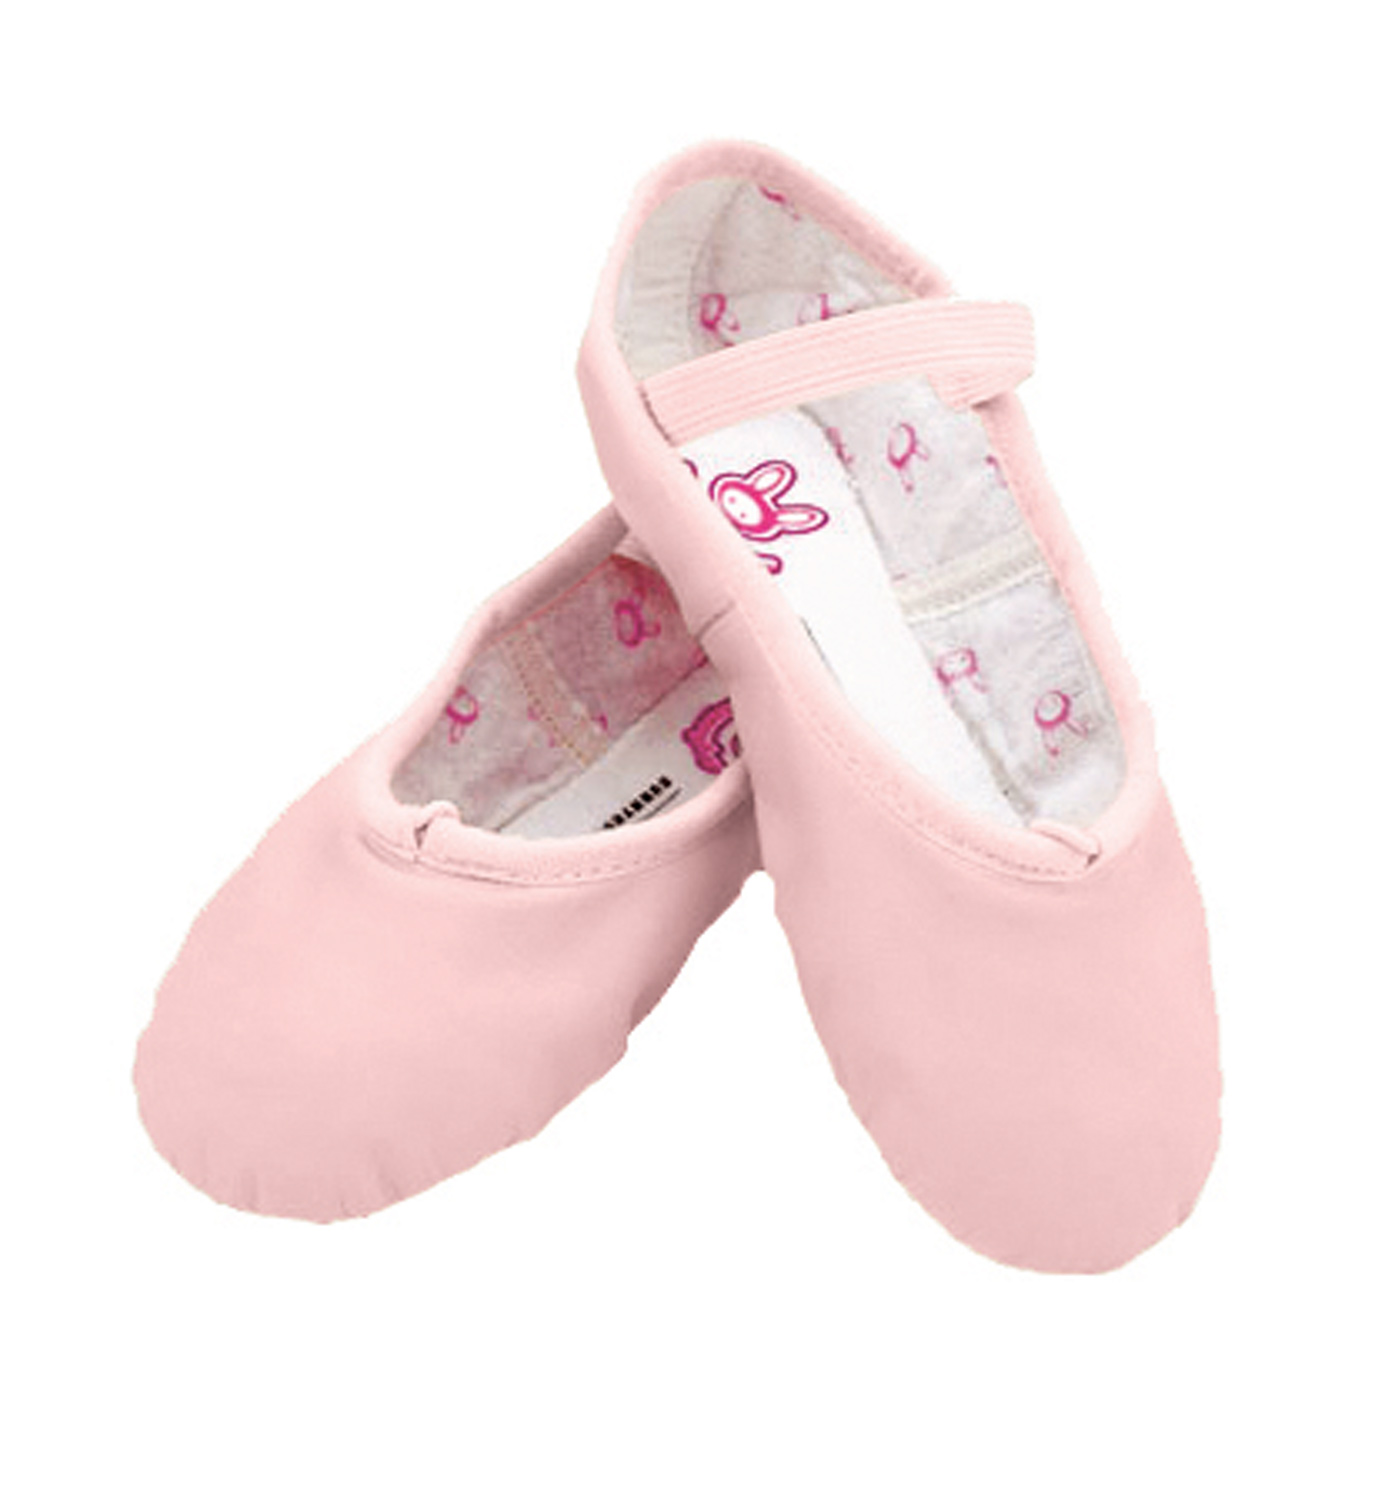 The full leather outsole is designed to add resistance to the working foot for strengthening, while the soft swan lining offers complete comfort. She'll also love the fun bunny character inside the shoe that offers a space for her to write her name. Bloch bunny hop ballet features a full leather upper, cotton lining with bunny print, cotton drawstring, suede full sole and attached elastic strap over the instep.